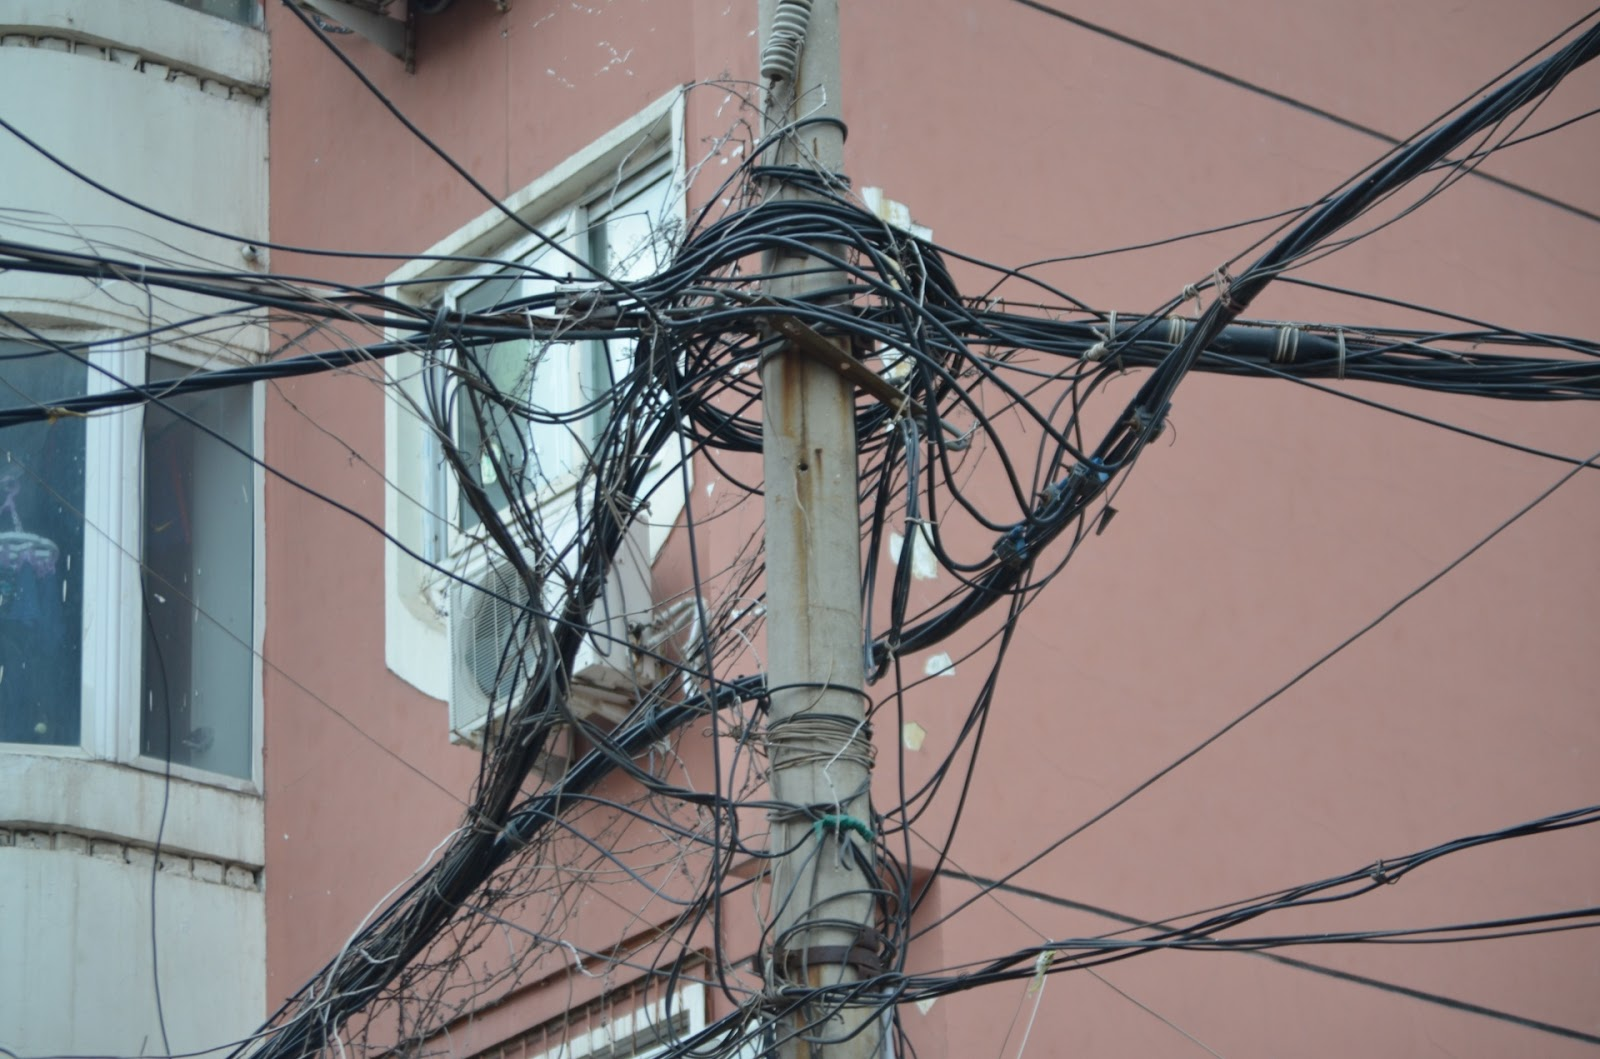 medium resolution of wires competing for space on free market pole